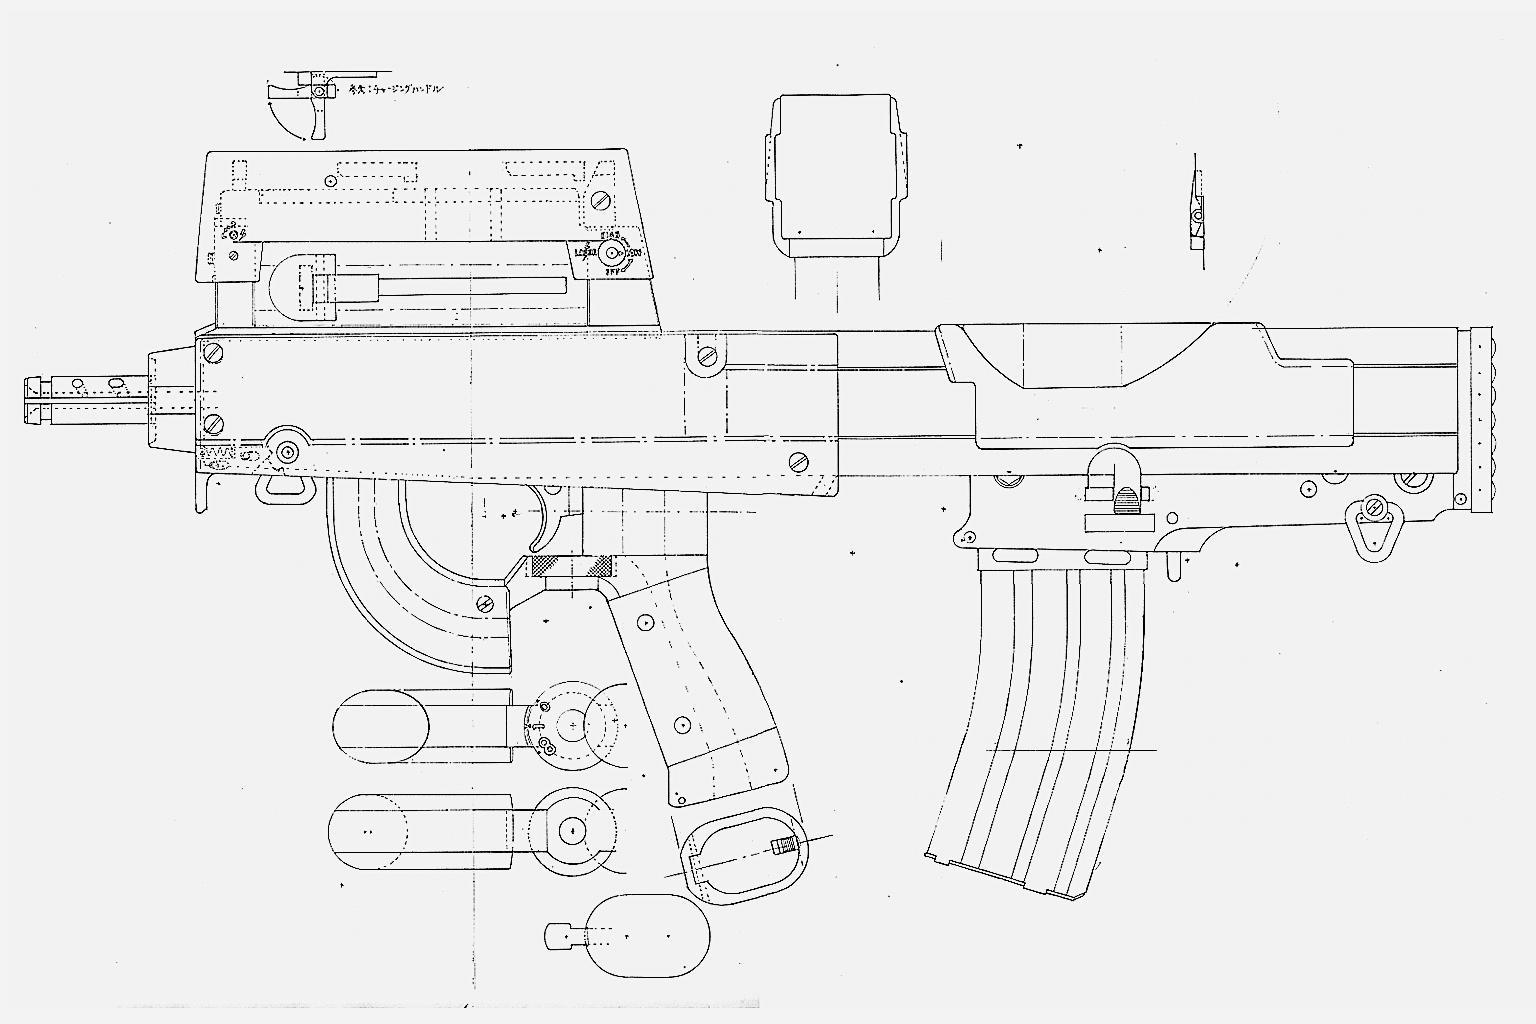 Ghost In The Shell Czn M22 9 Weapon Schematics Gndn